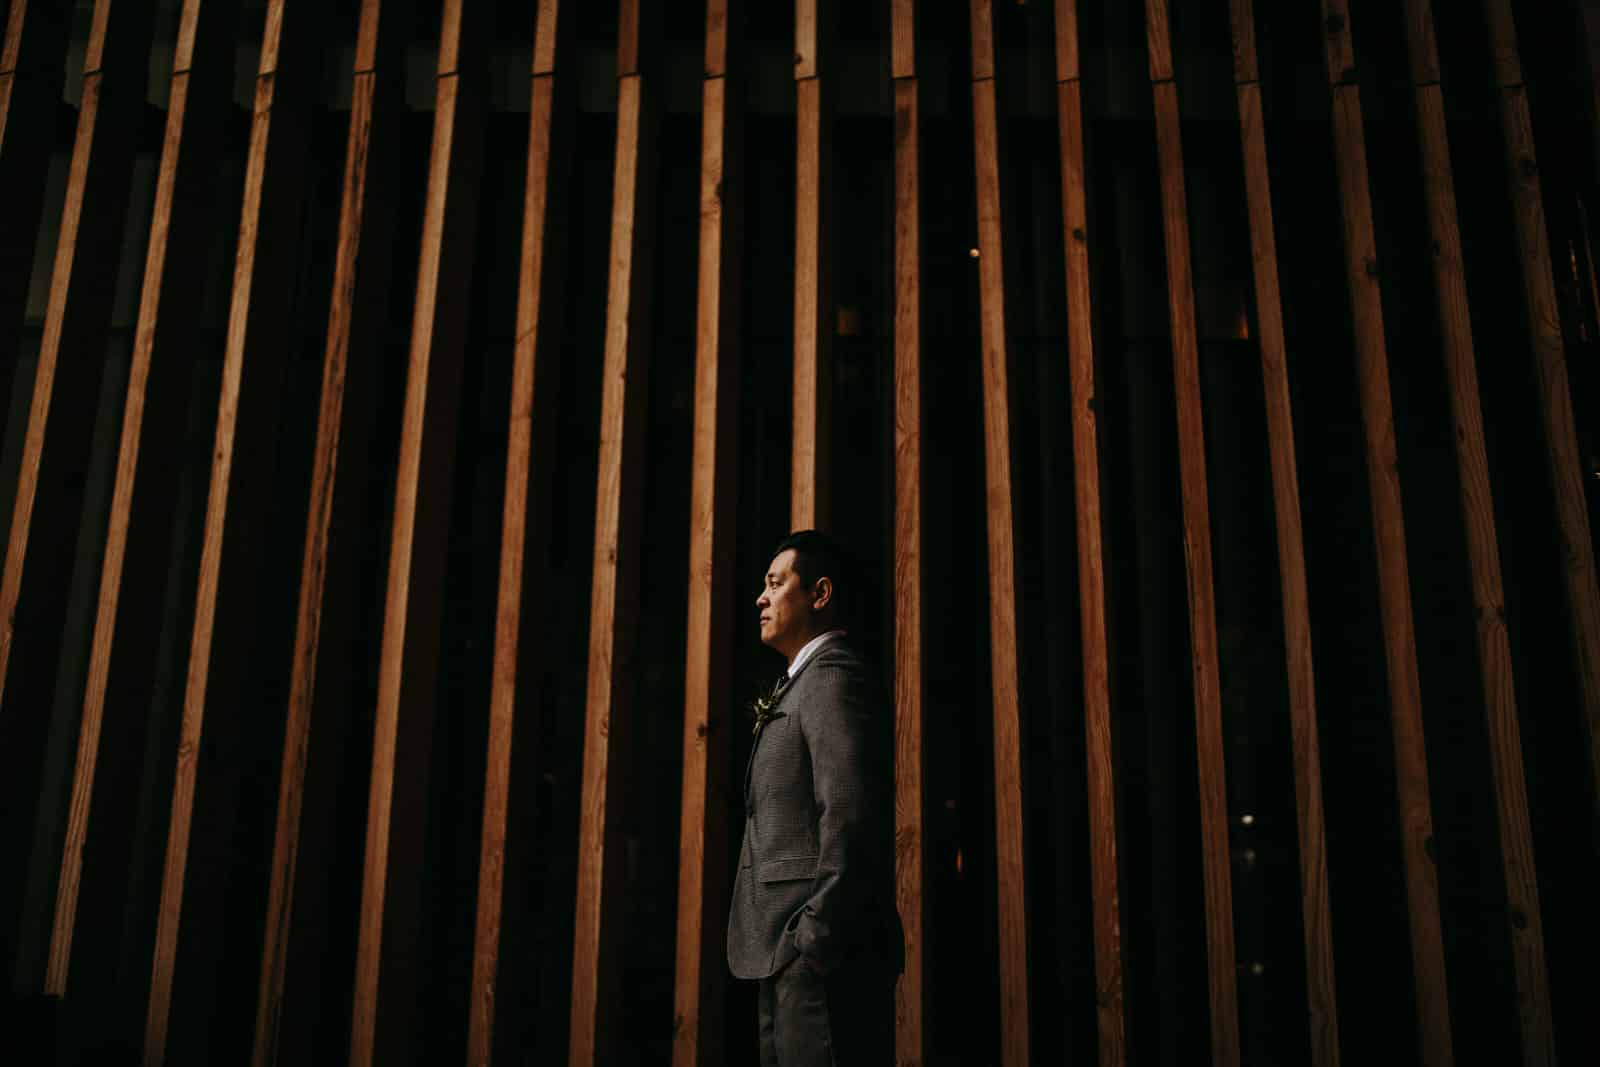 The groom is standing in front of a building with vertical wooden battens.